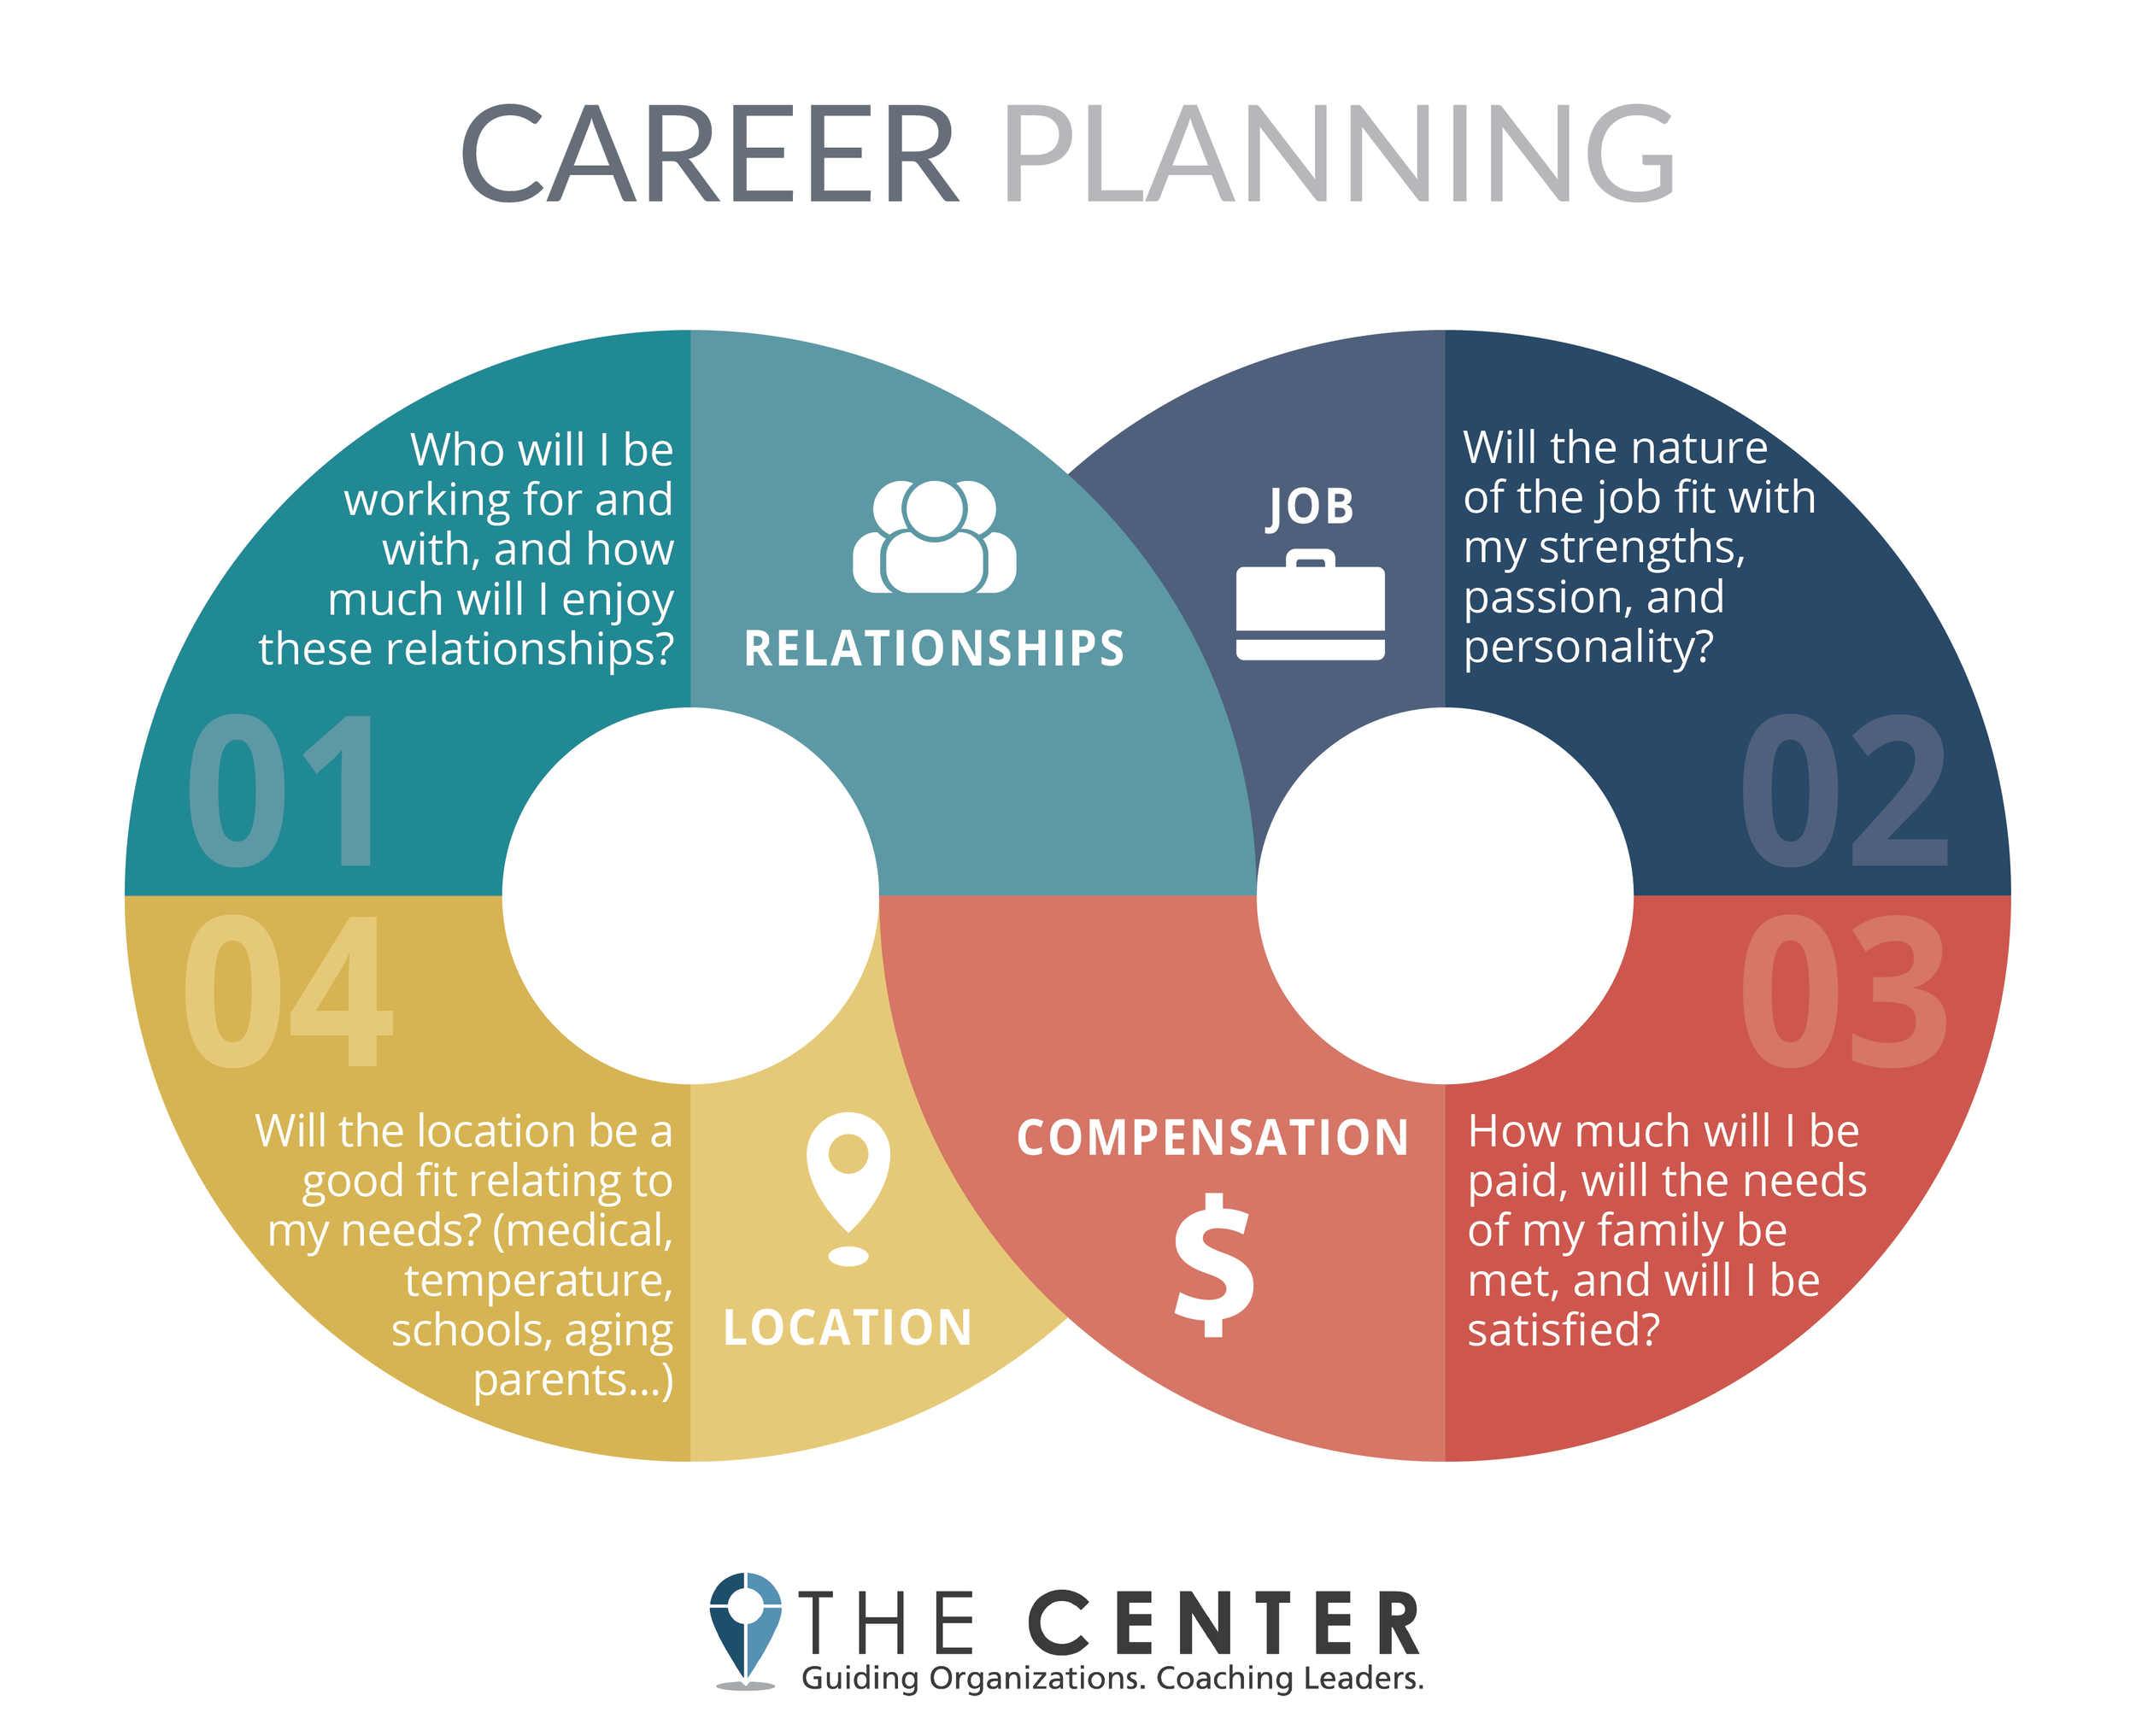 4 Questions That Will Make the Difference in Choosing Your Next Job - The Center Consulting Group - Leadership Coaching and Consulting for Businesses, Churches, and Nonprofits